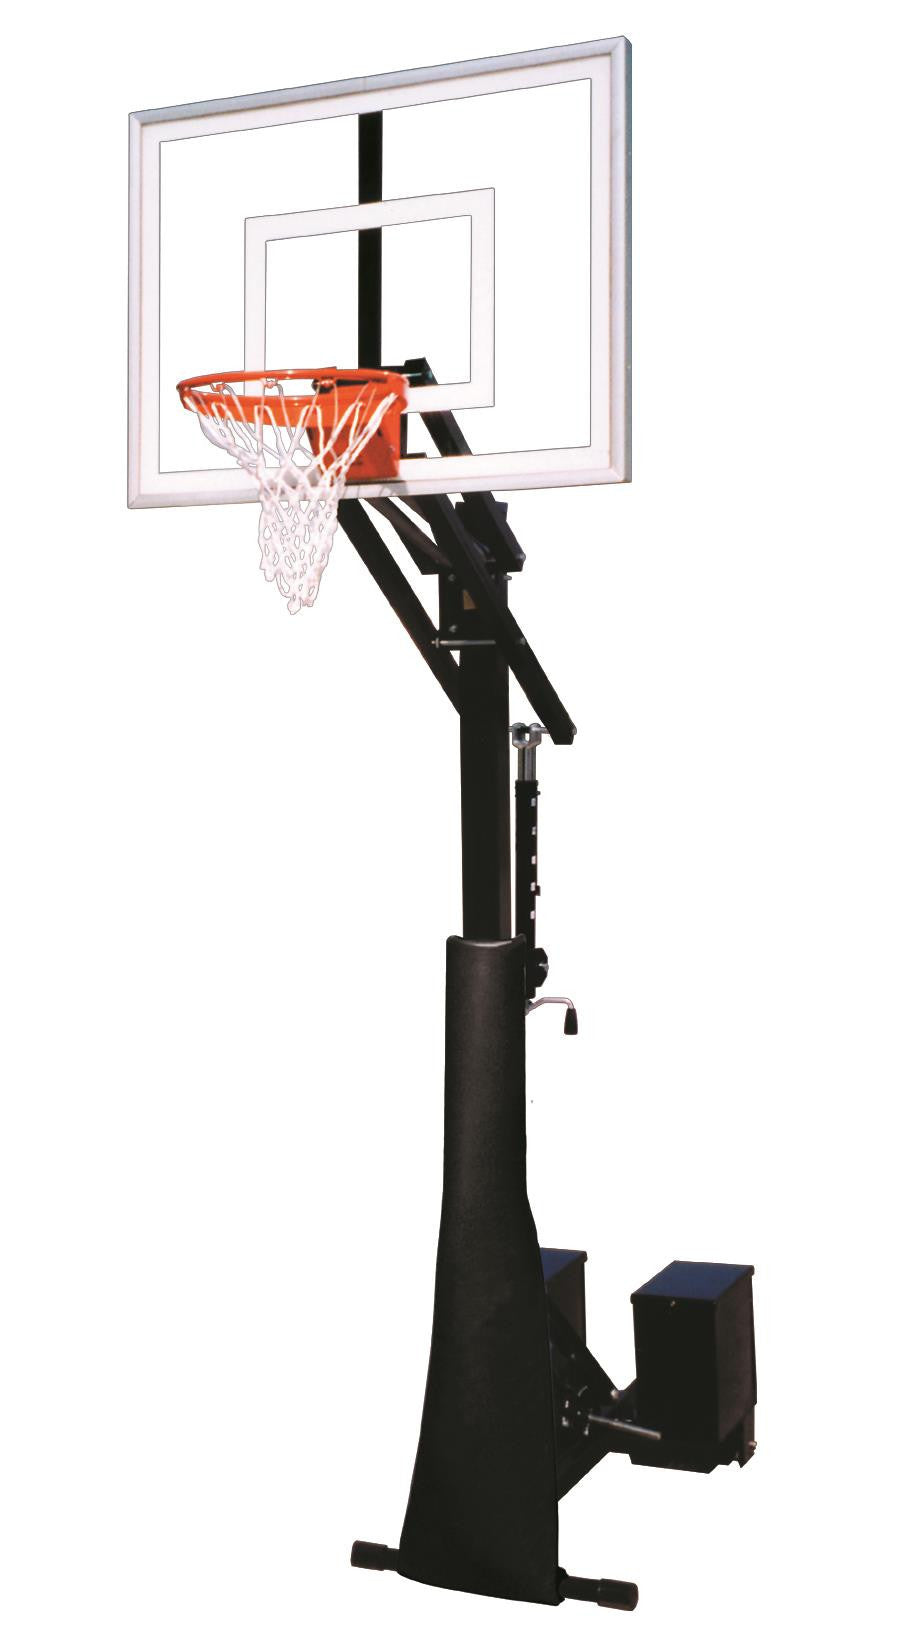 First Team Rolla Jam III Adjustable Portable Basketball Hoop 54 inch Acrylic